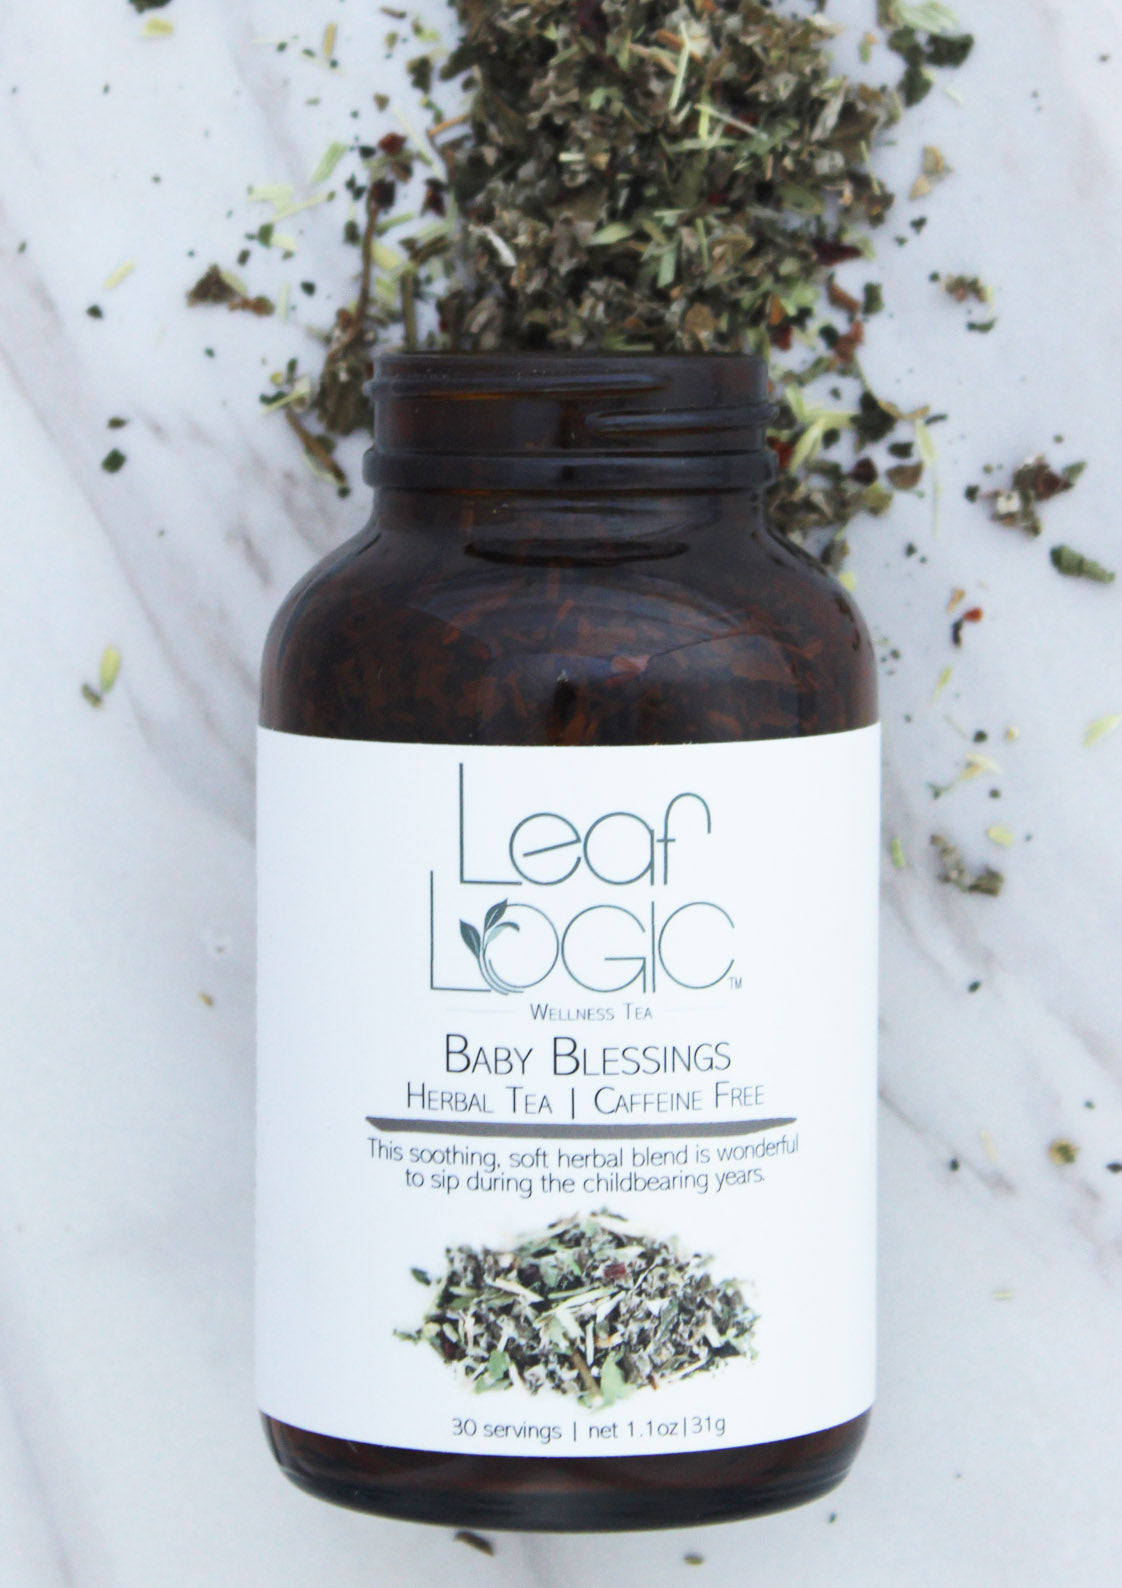 Leaf Logic - Baby Blessings Loose Leaf Tea in an Amber Refillable Jar